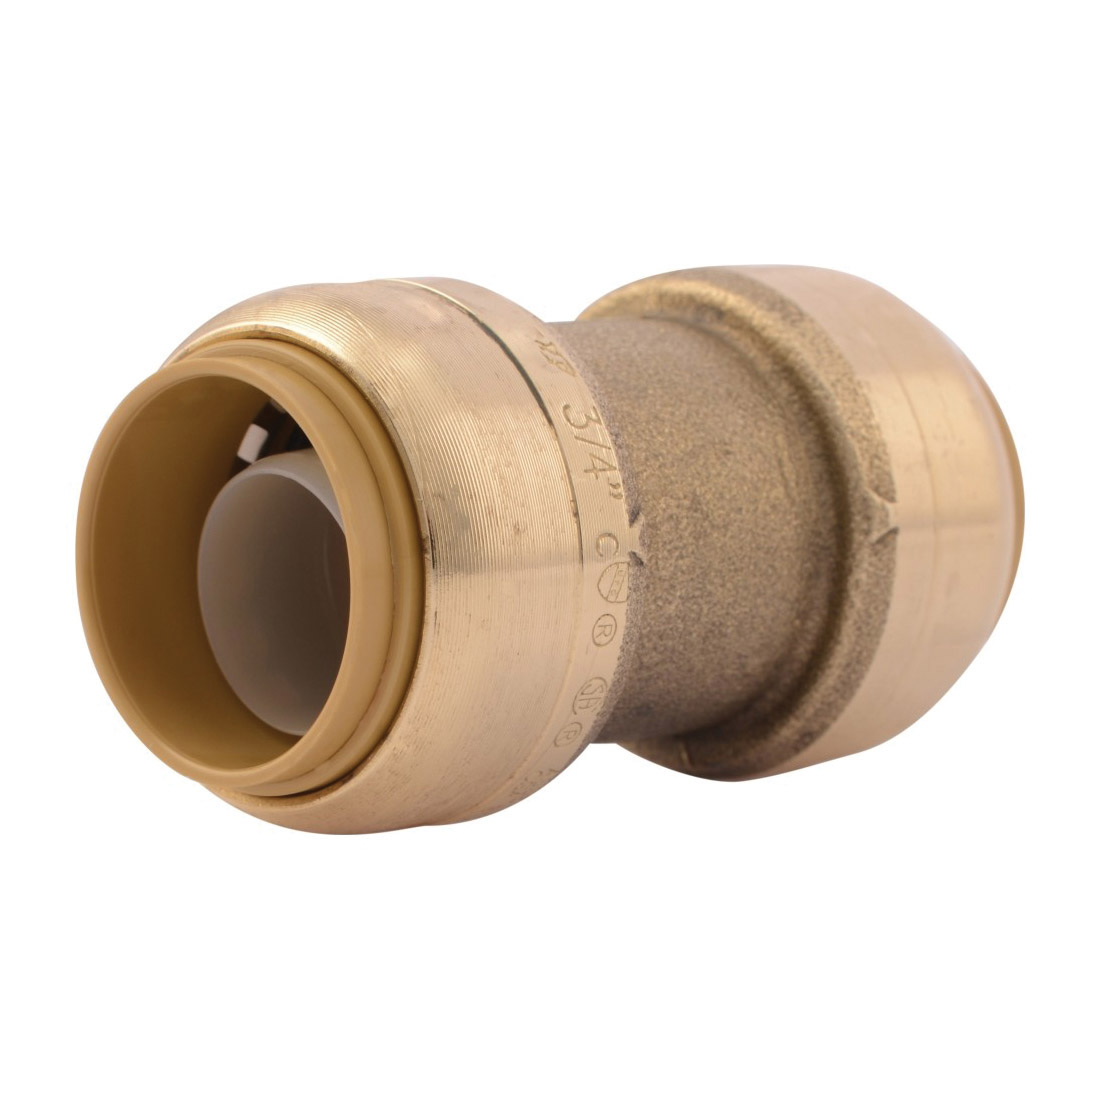 Sharkbite® U016LF Straight Pipe Coupling, 3/4 in Nominal, Push-Fit End Style, Brass, Natural Brass/Polished Chrome, Import